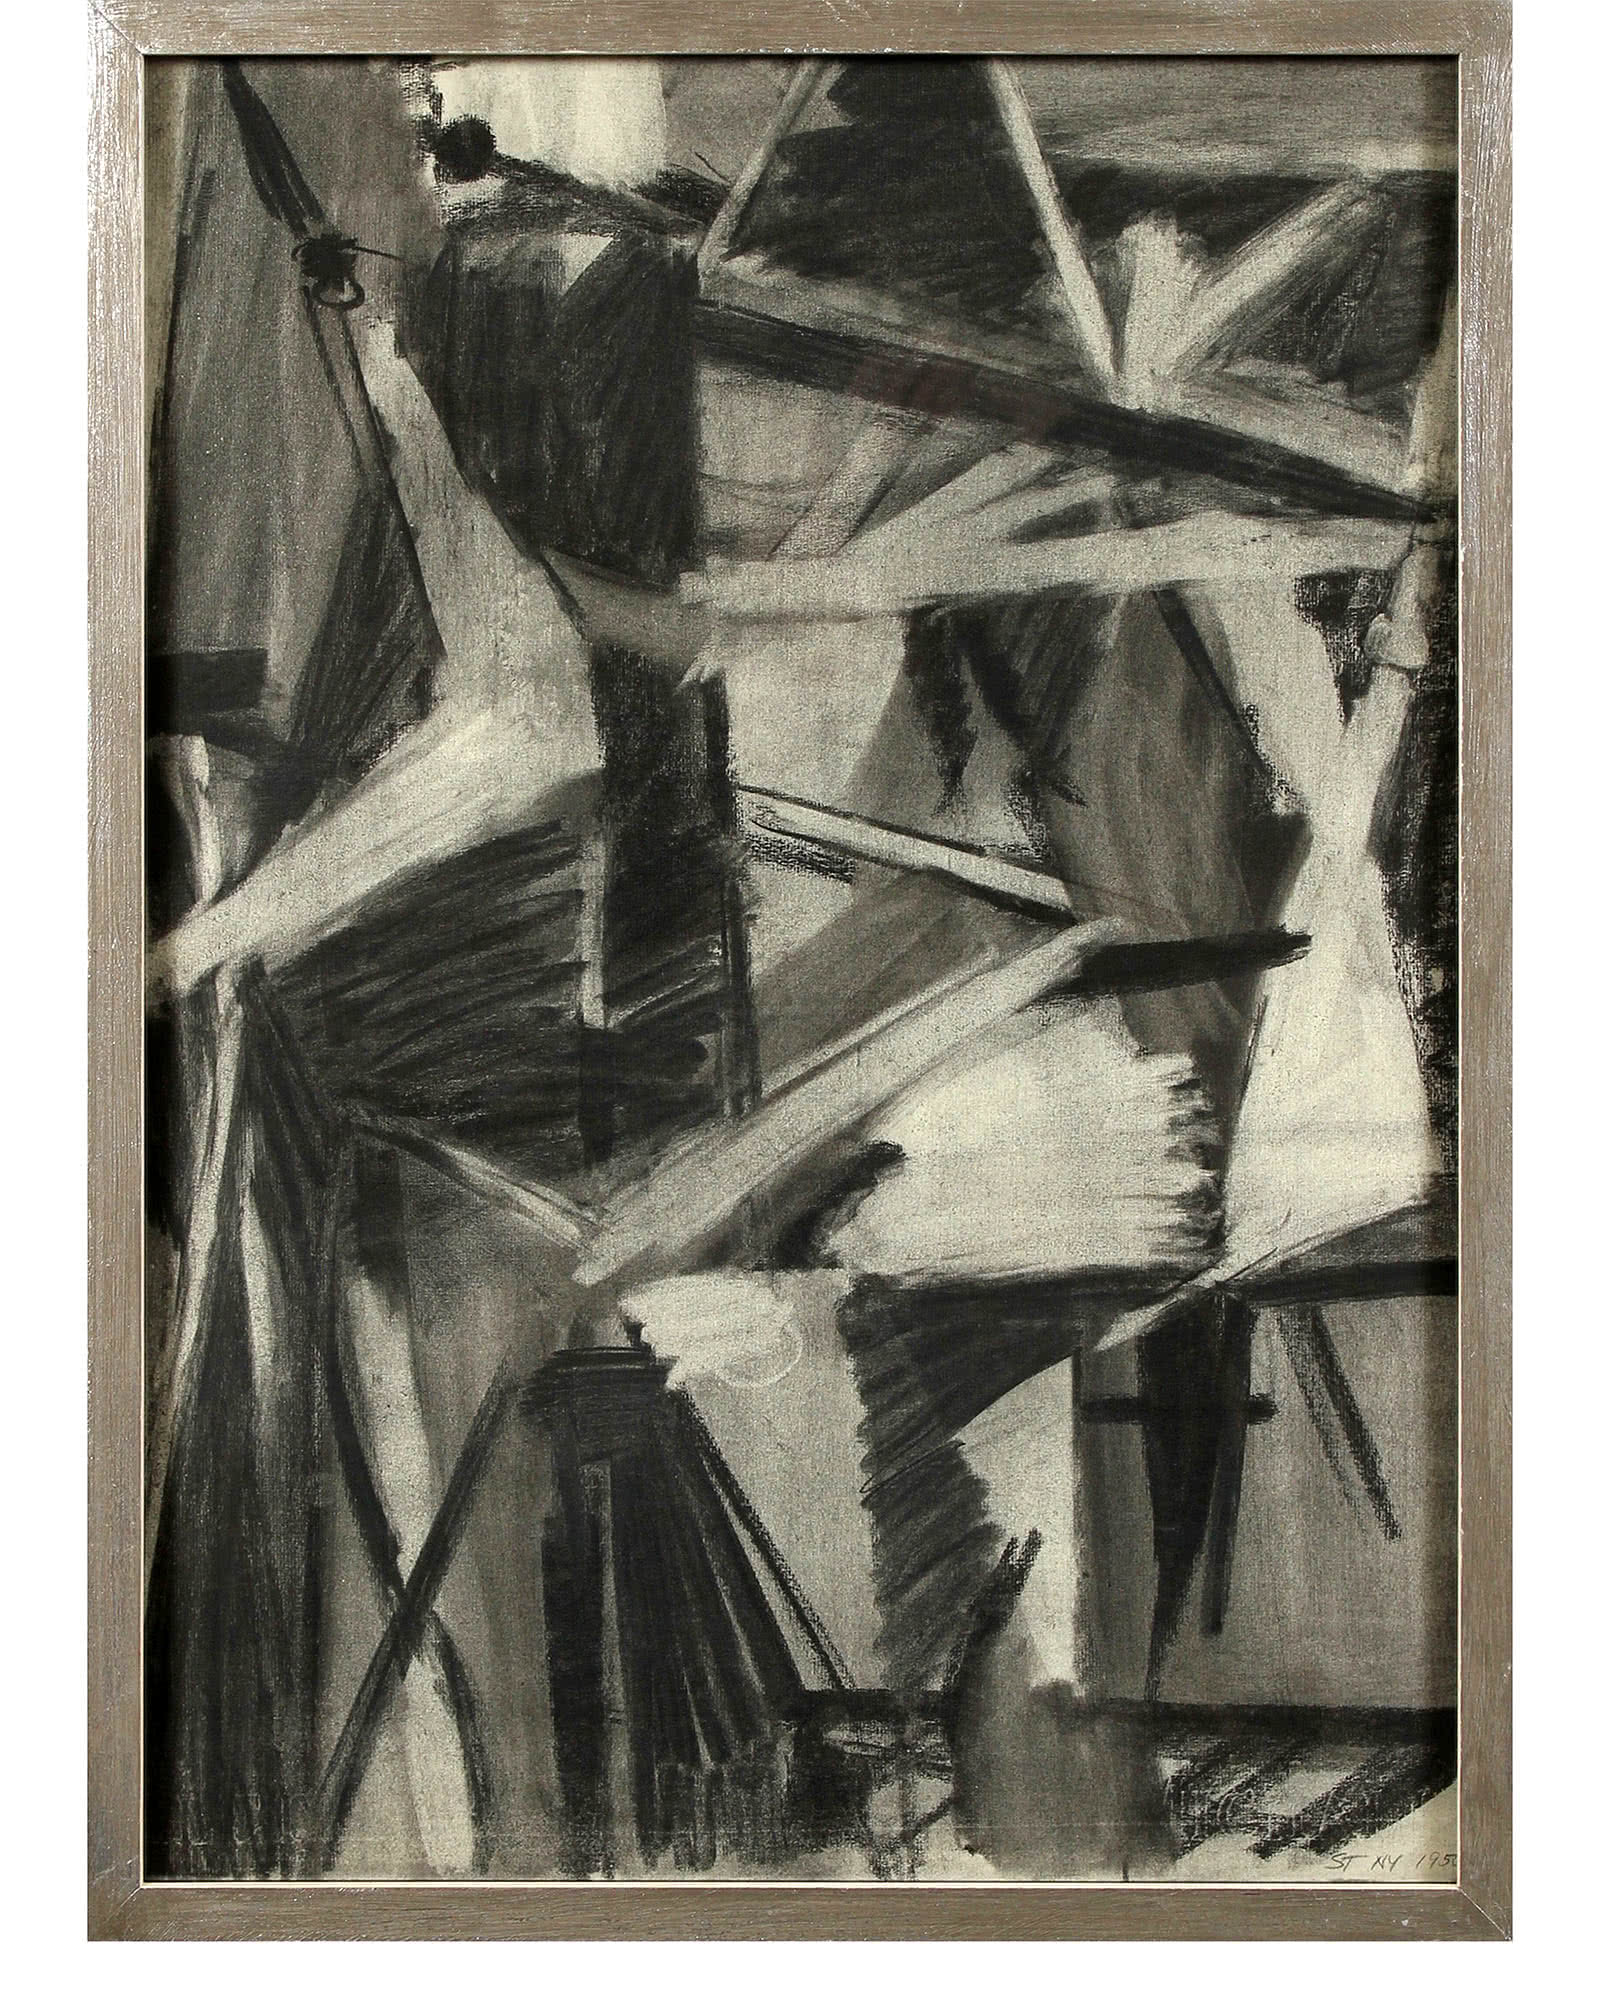 """Modernist Abstraction in Charcoal"" by Seymour Tubis"